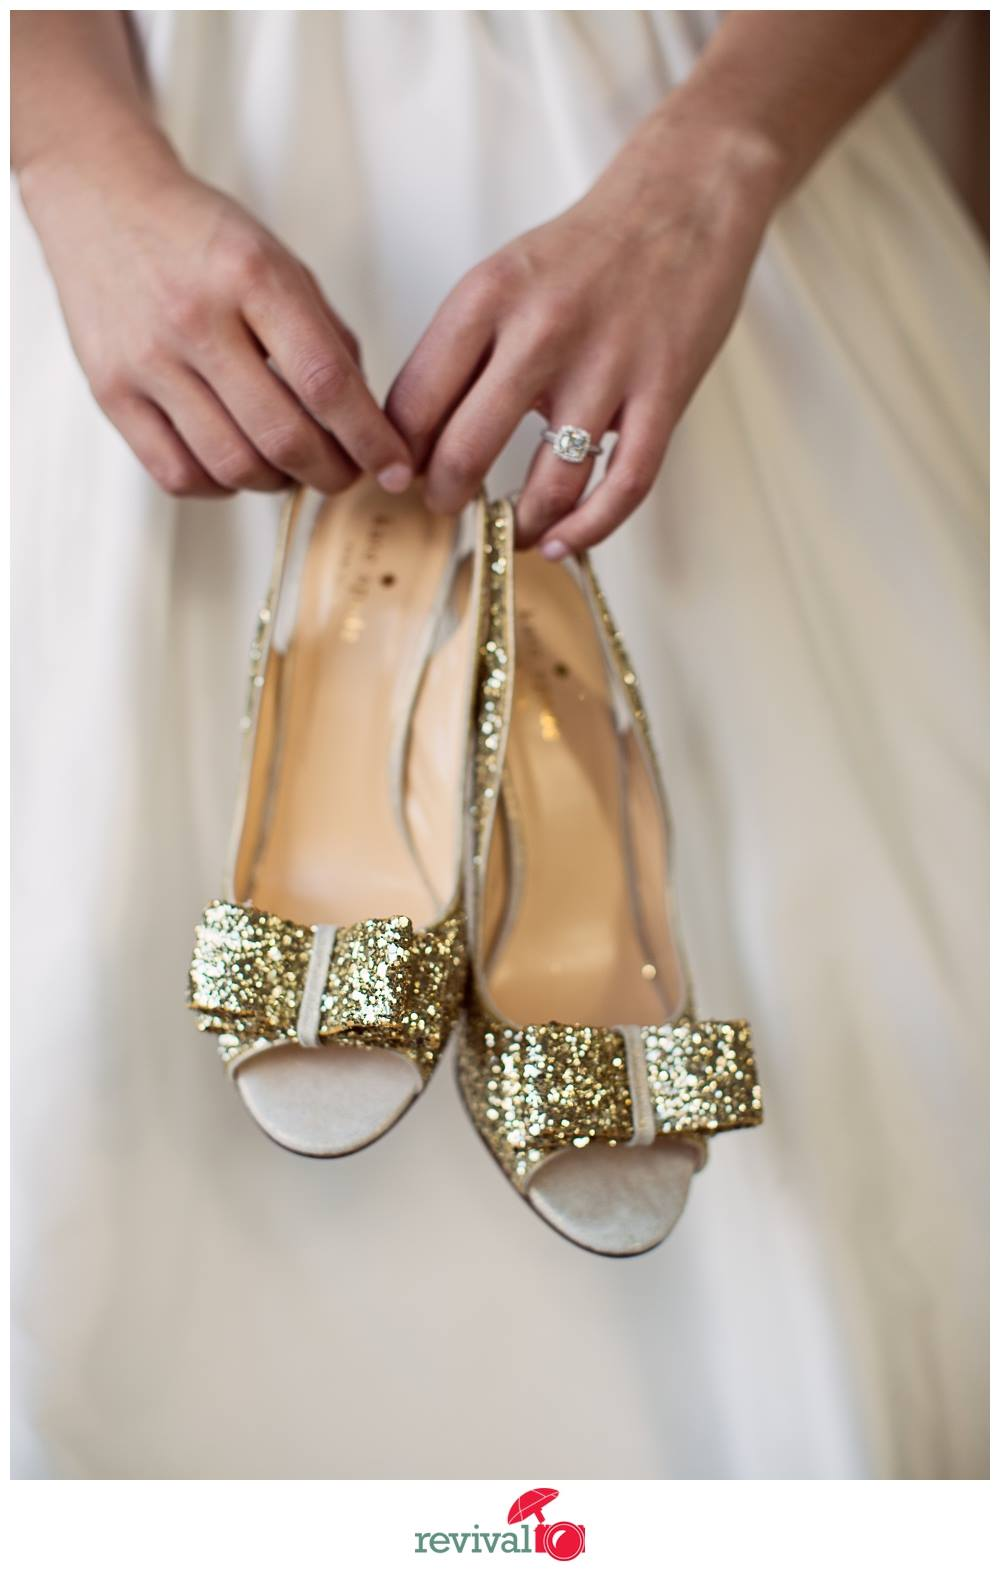 If you bought new heels for the big day, might be a good idea to break them in just a bit! OR, bring a pair of comfortable shoes to change into for the reception!